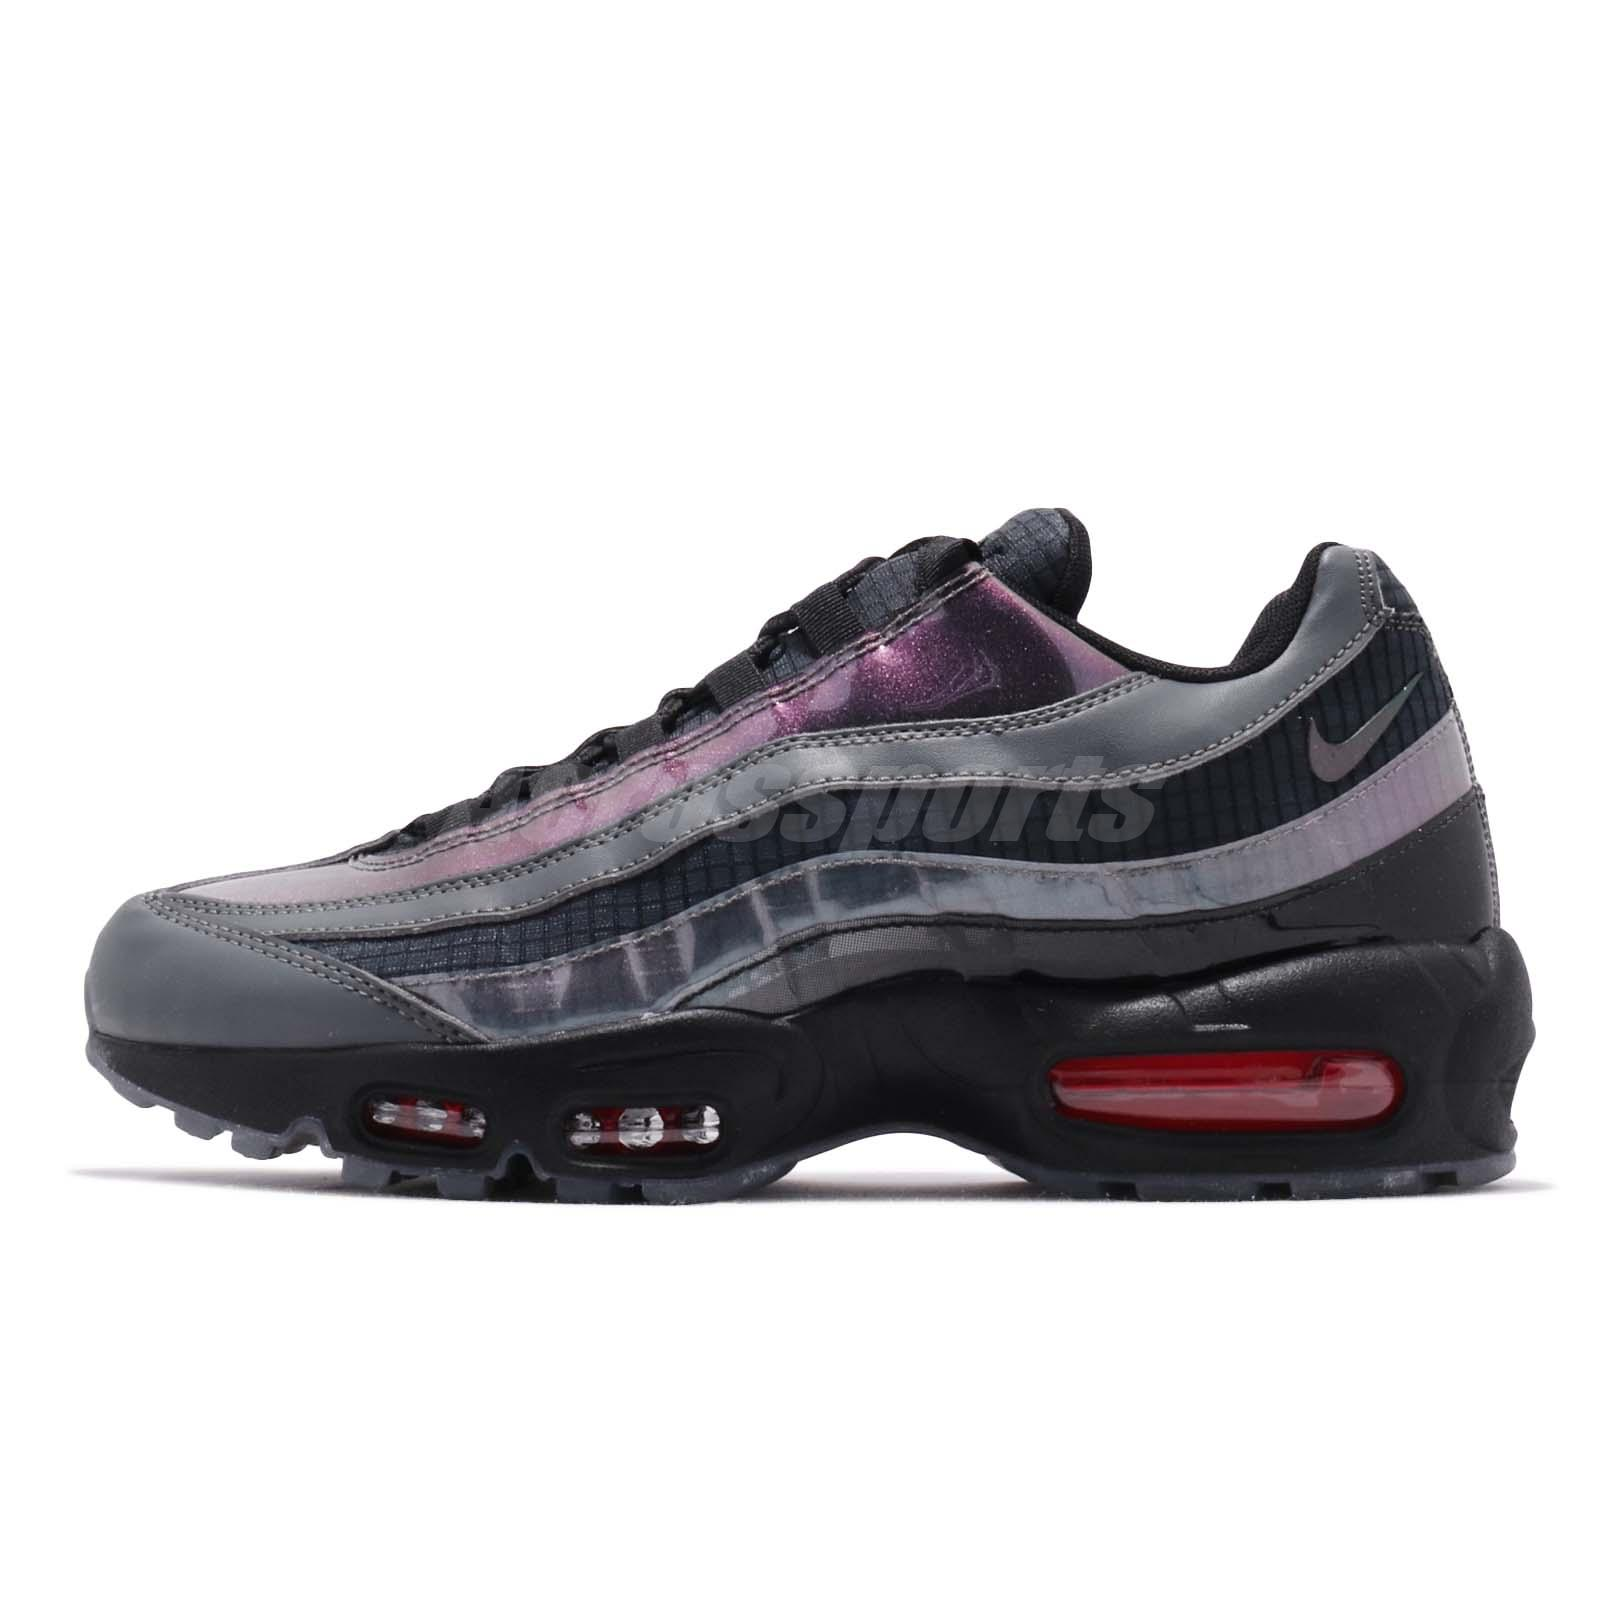 brand new f4f64 1daac Nike Air Max 95 LV8 Ember Glow Black Dark Grey Men Running Shoes AO2450-001